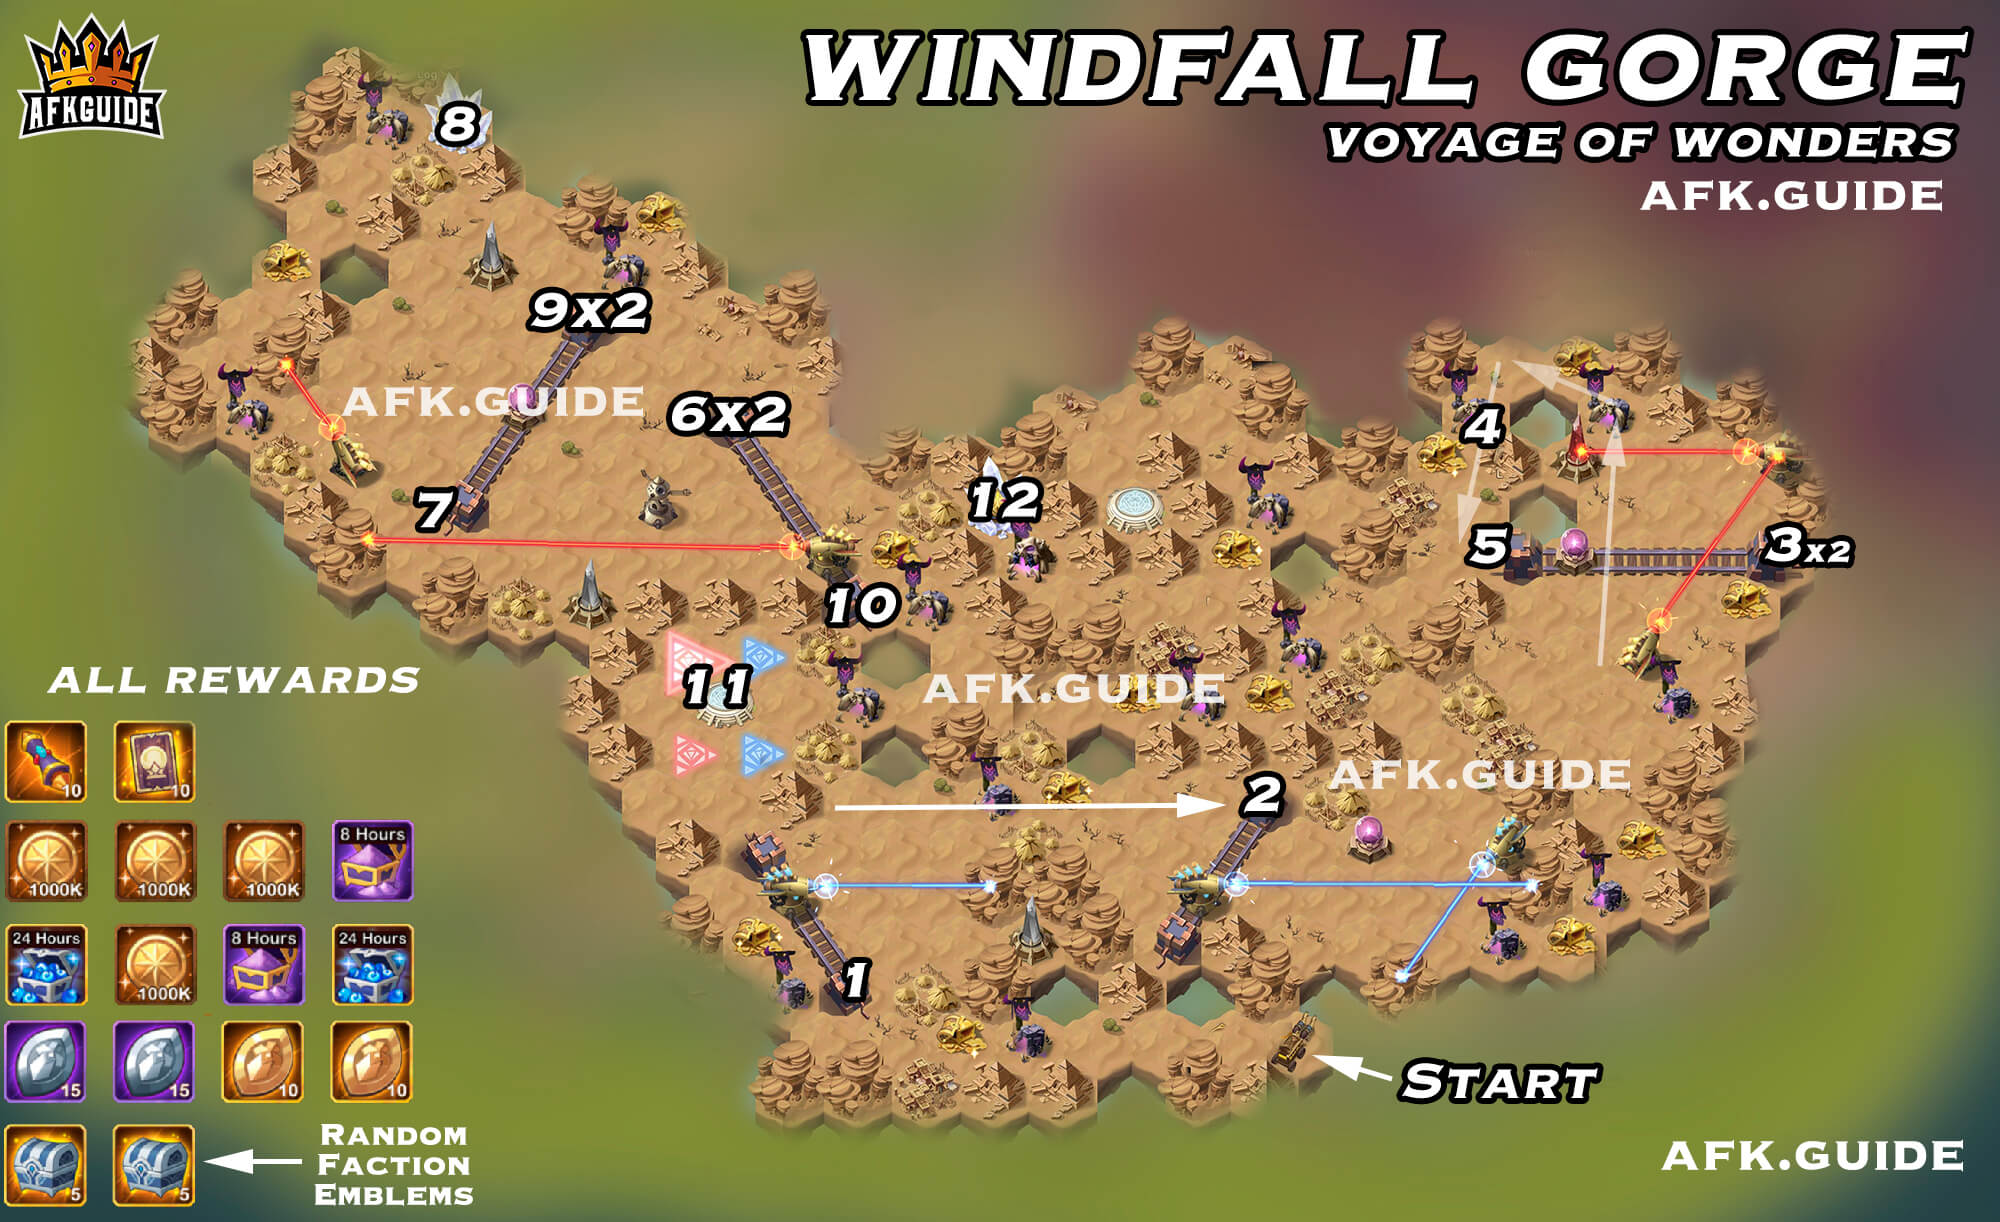 windfall gorge map voyage of wonders afk arena